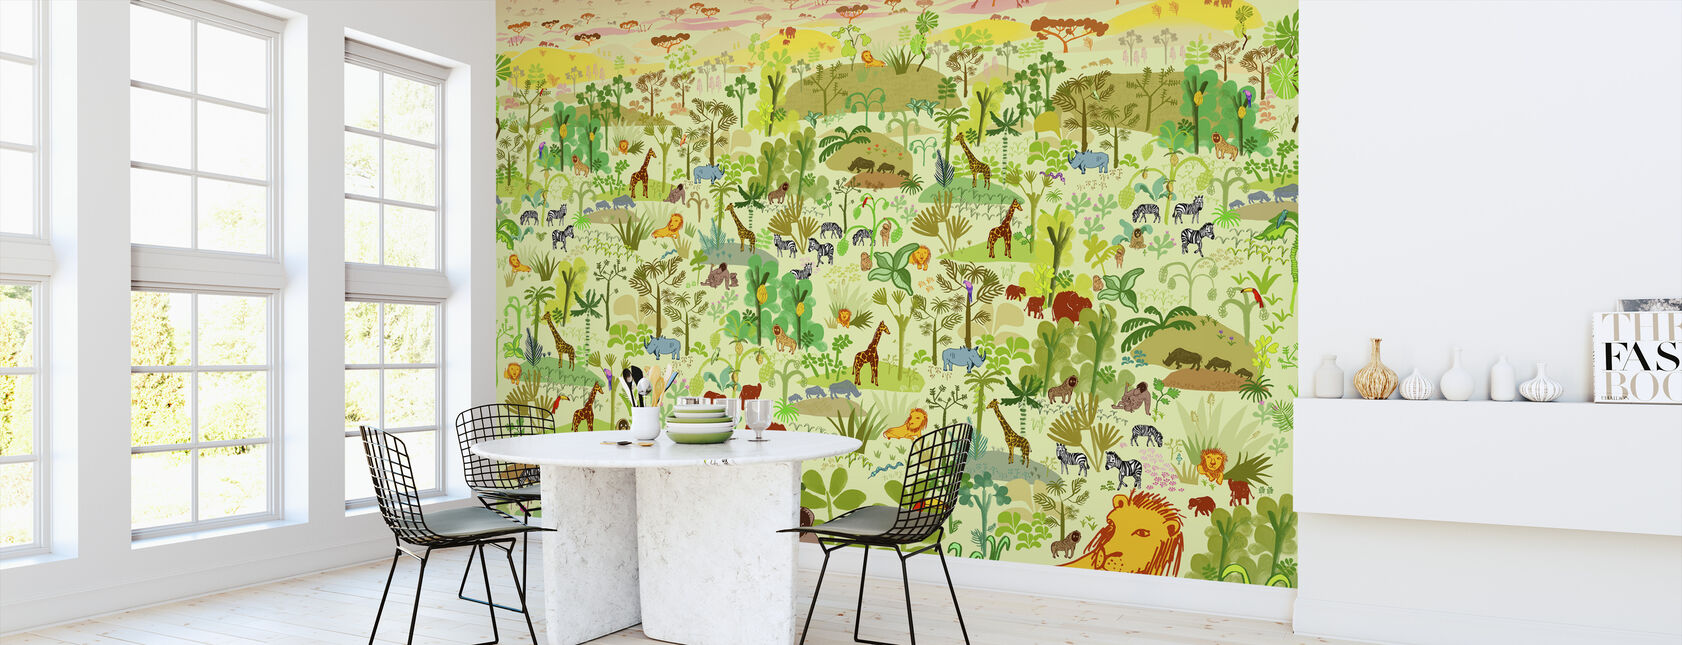 Serengeti - Wallpaper - Kitchen